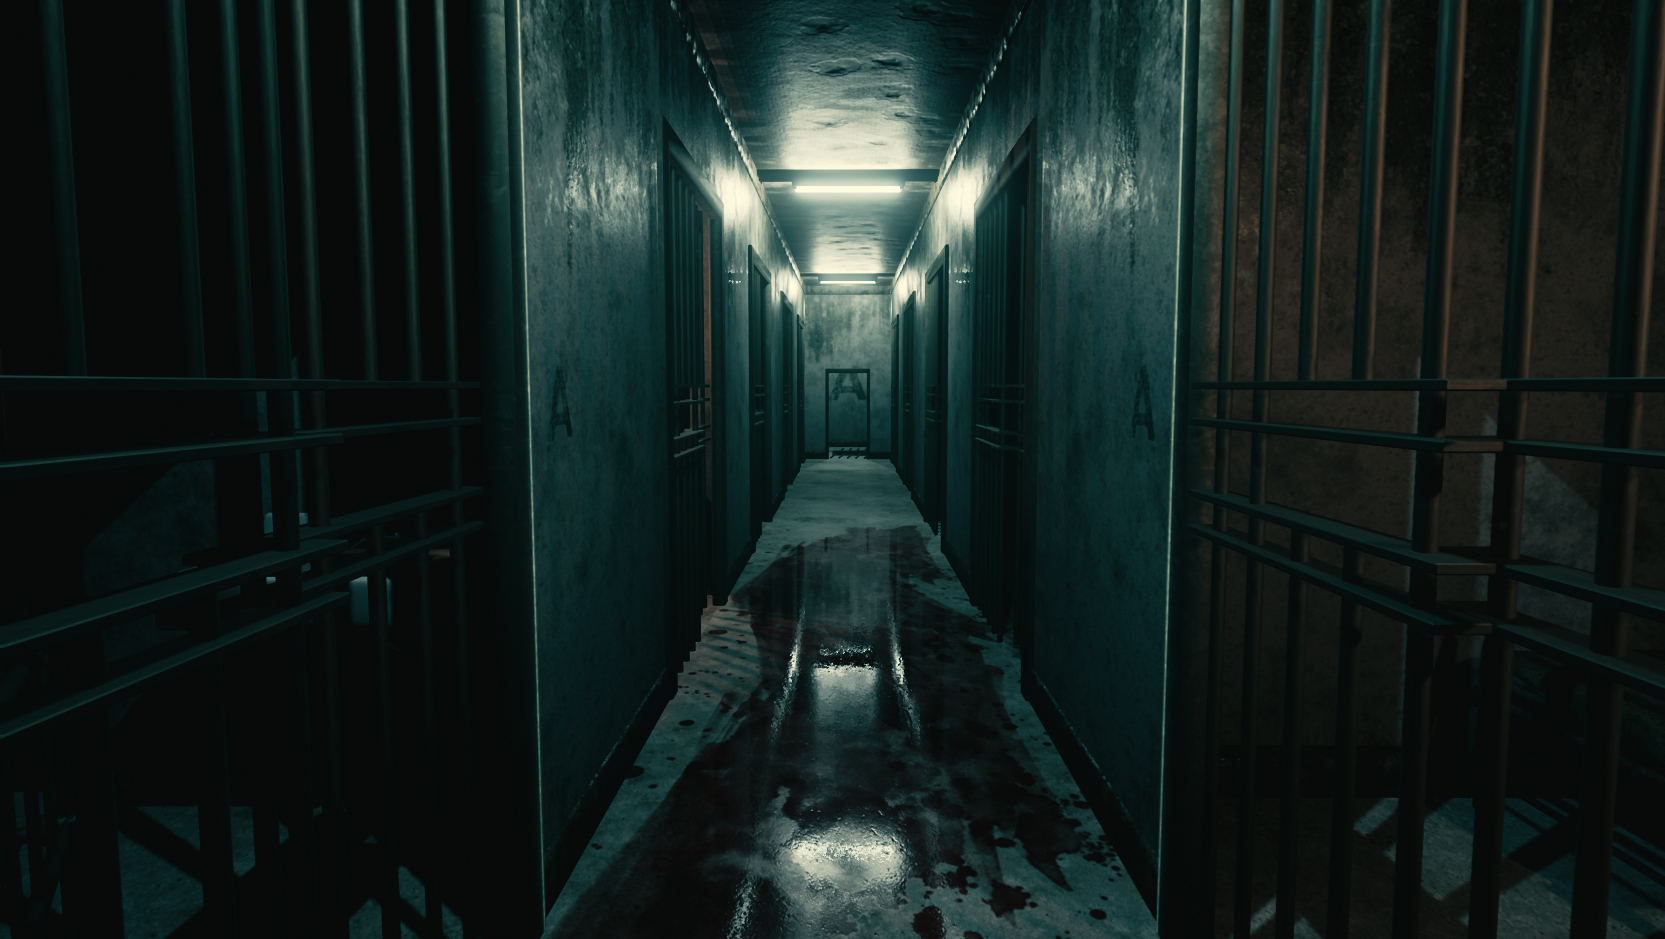 Walk these halls and discover the truth about Isabelle Miller